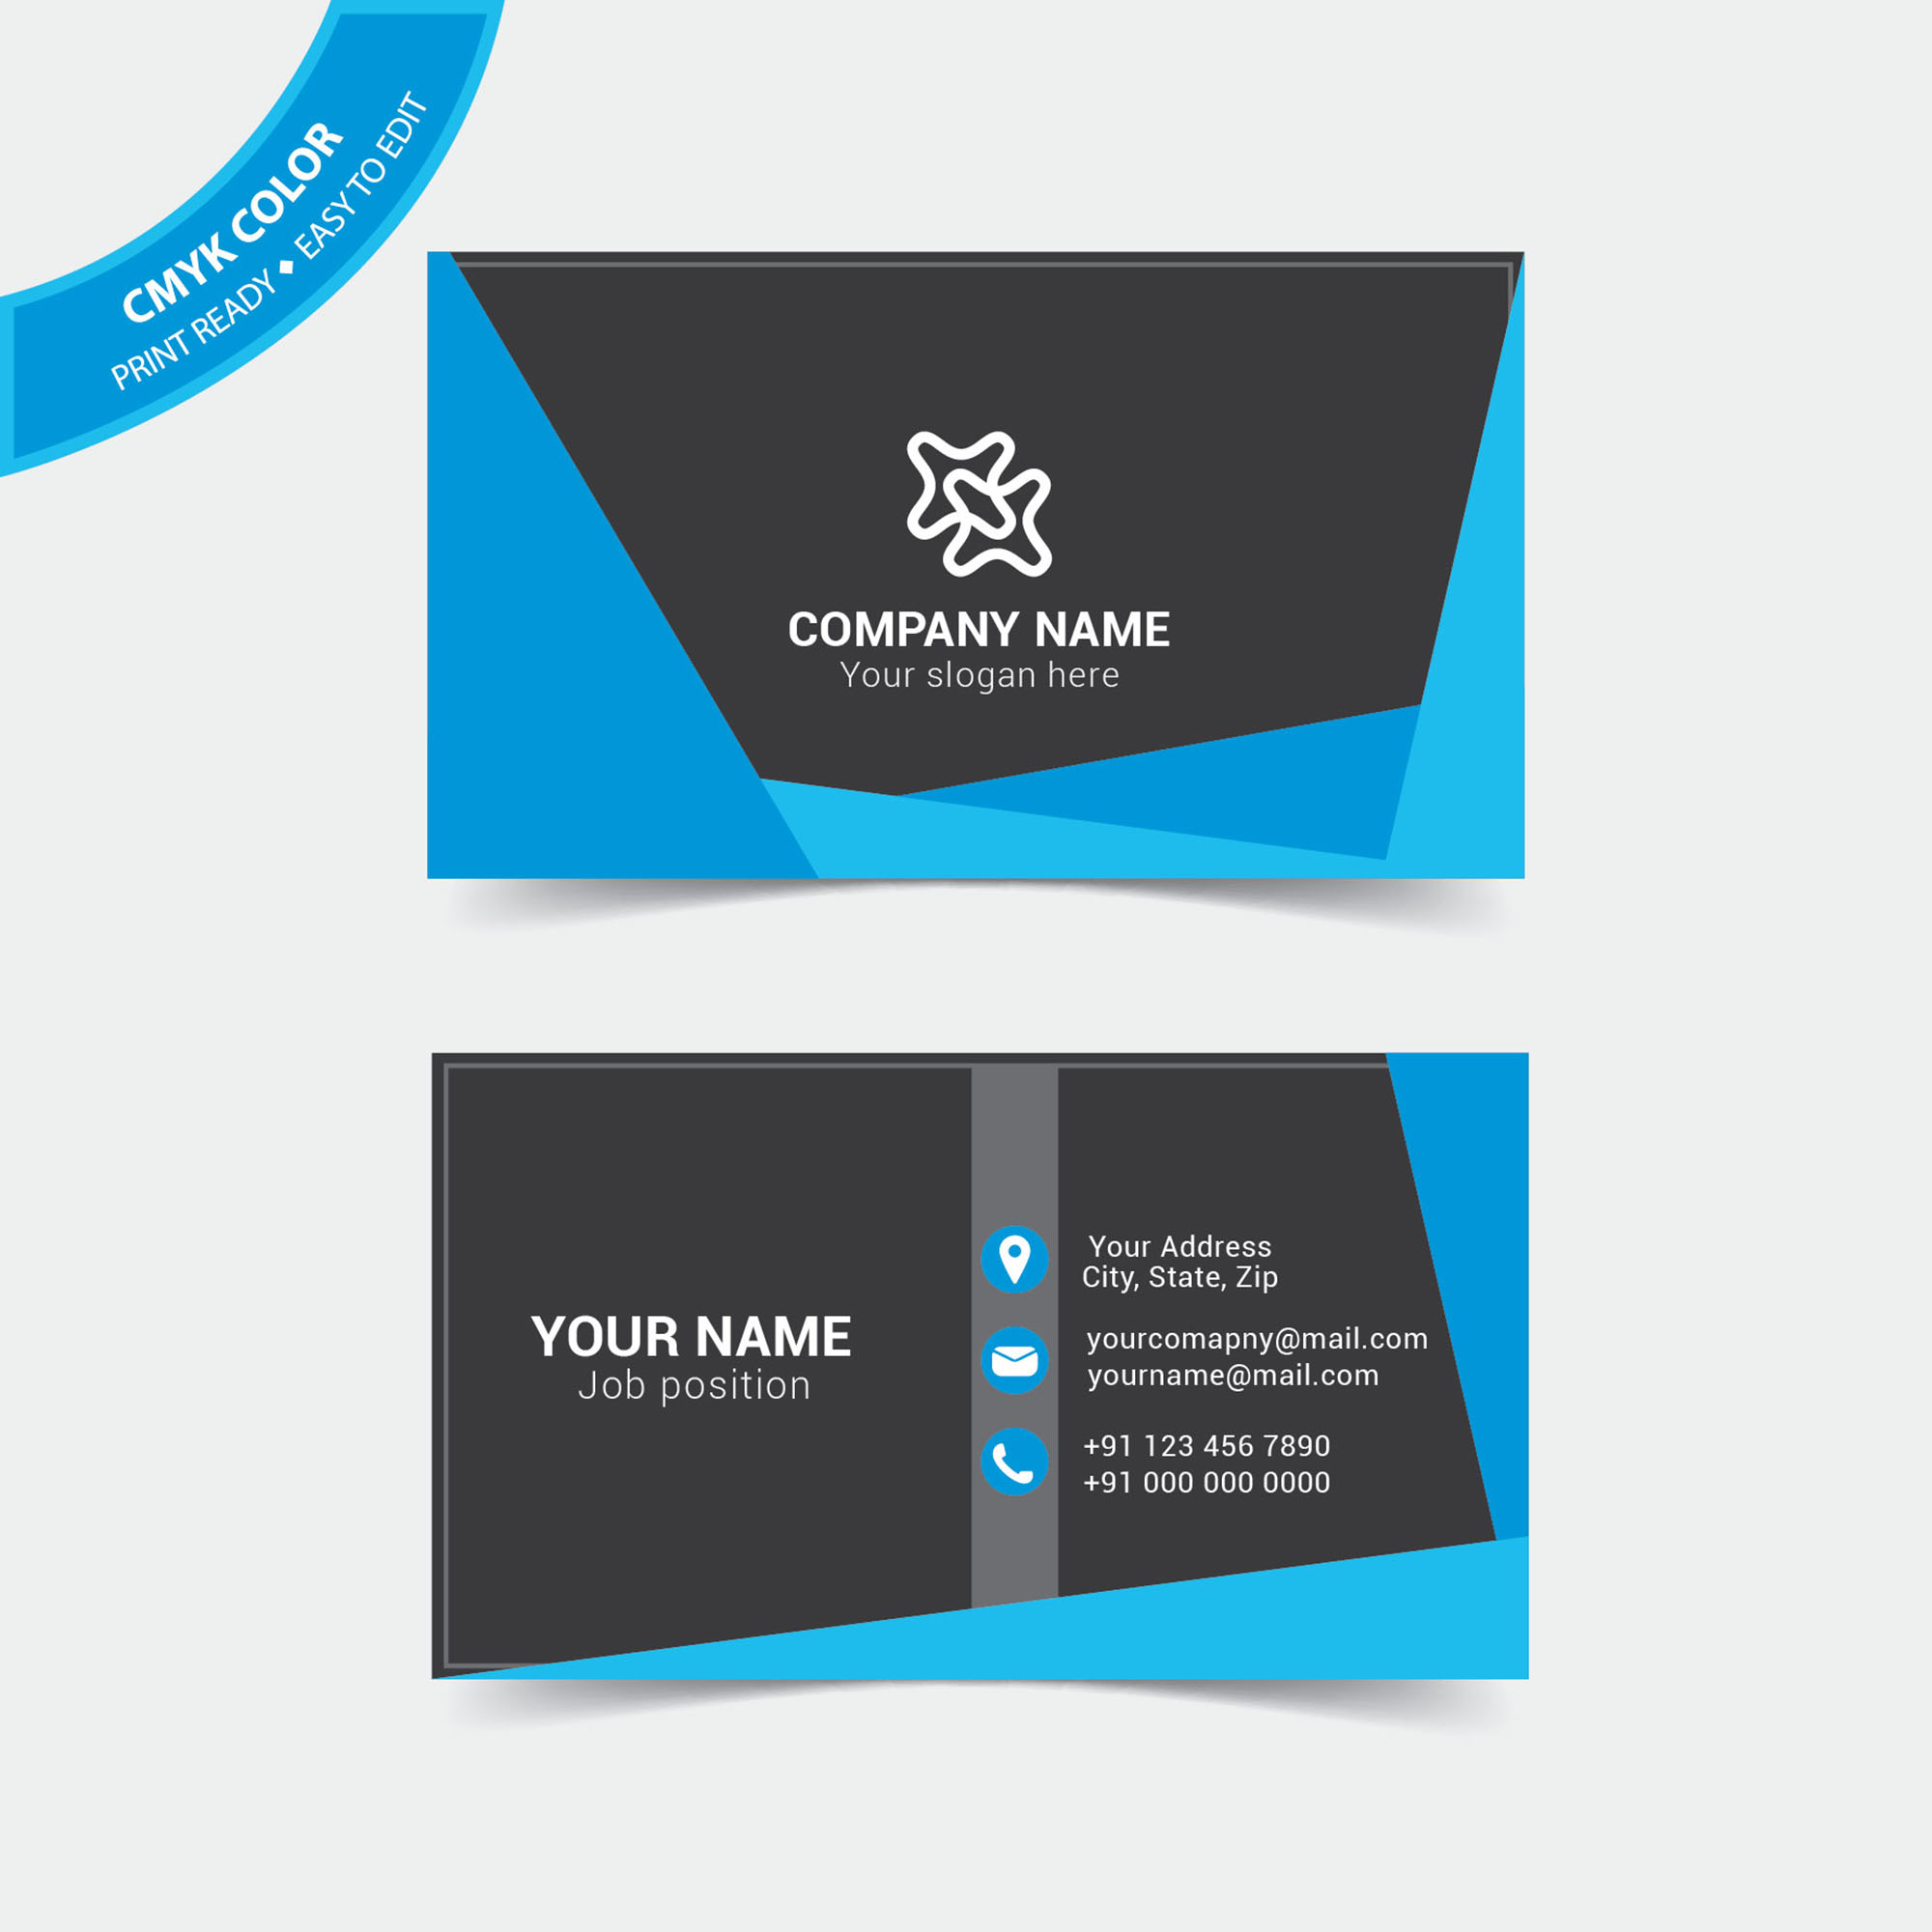 Modern business visiting card design free download wisxi abstract business card design business creative graphic layout template accmission